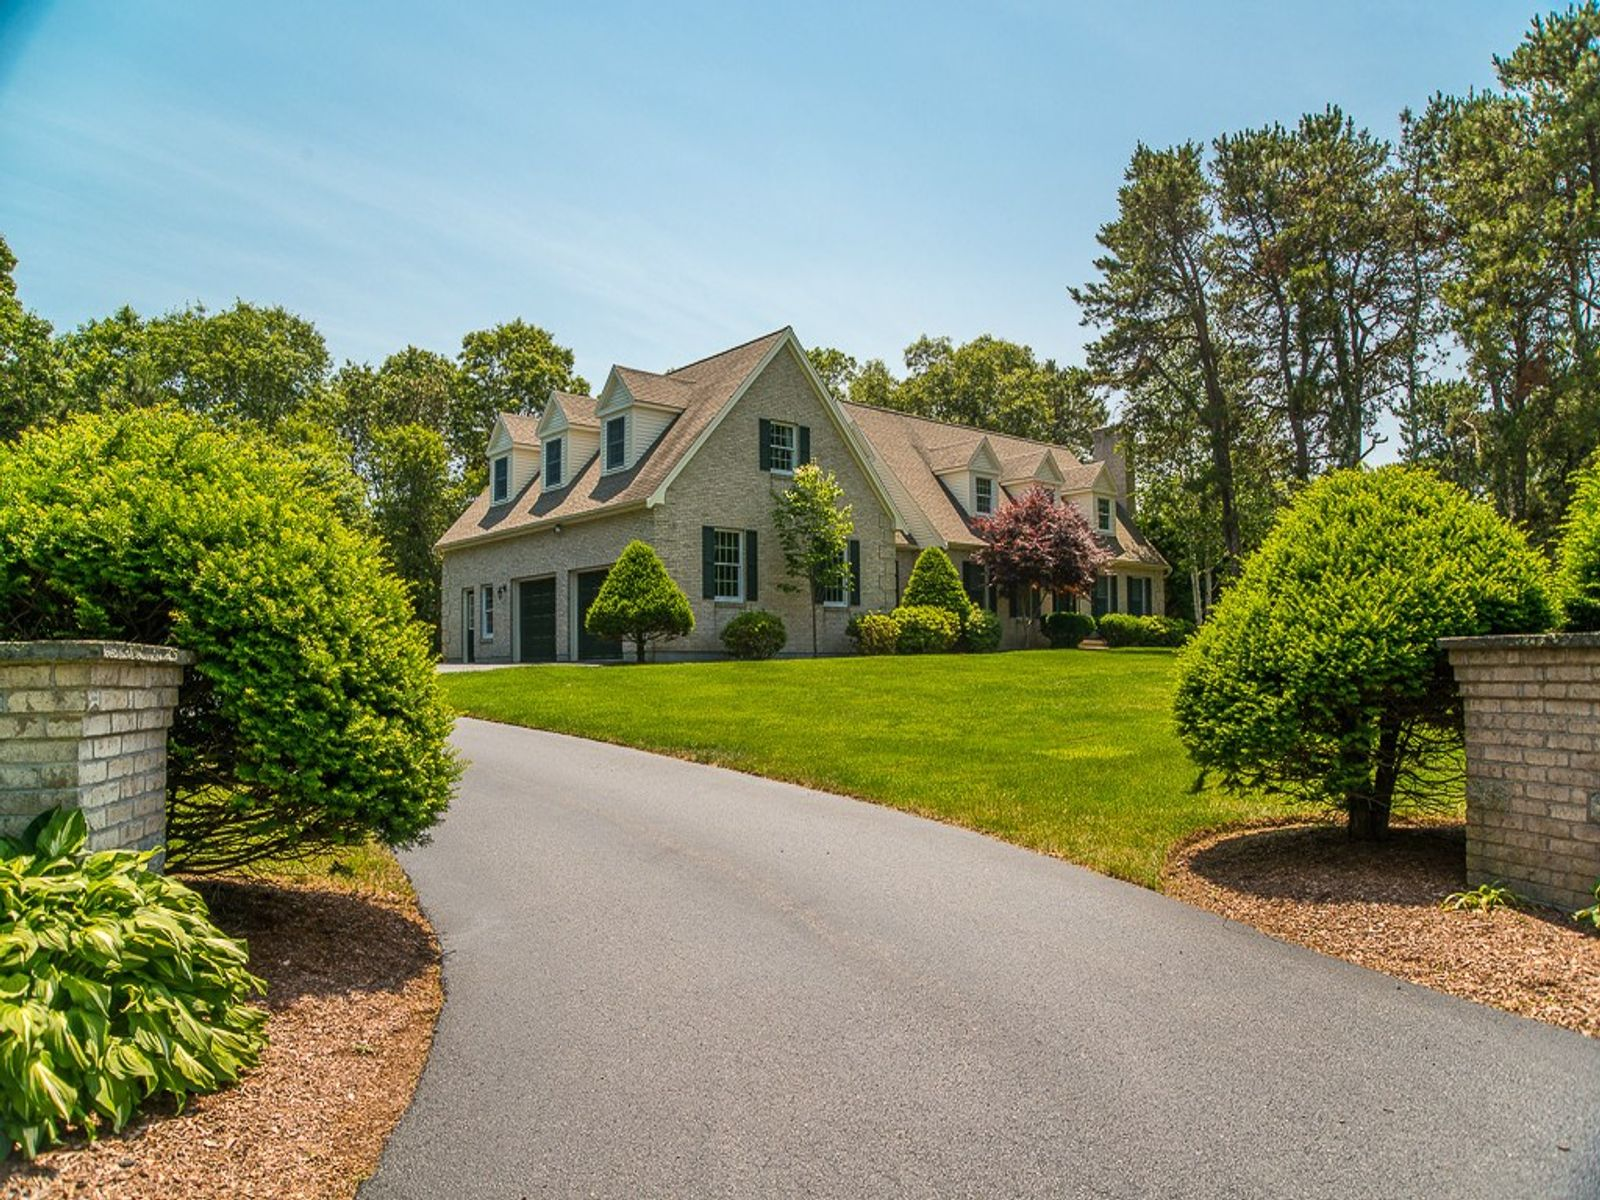 Indian Lakes, Marstons Mills MA Single Family Home - Cape Cod Real Estate